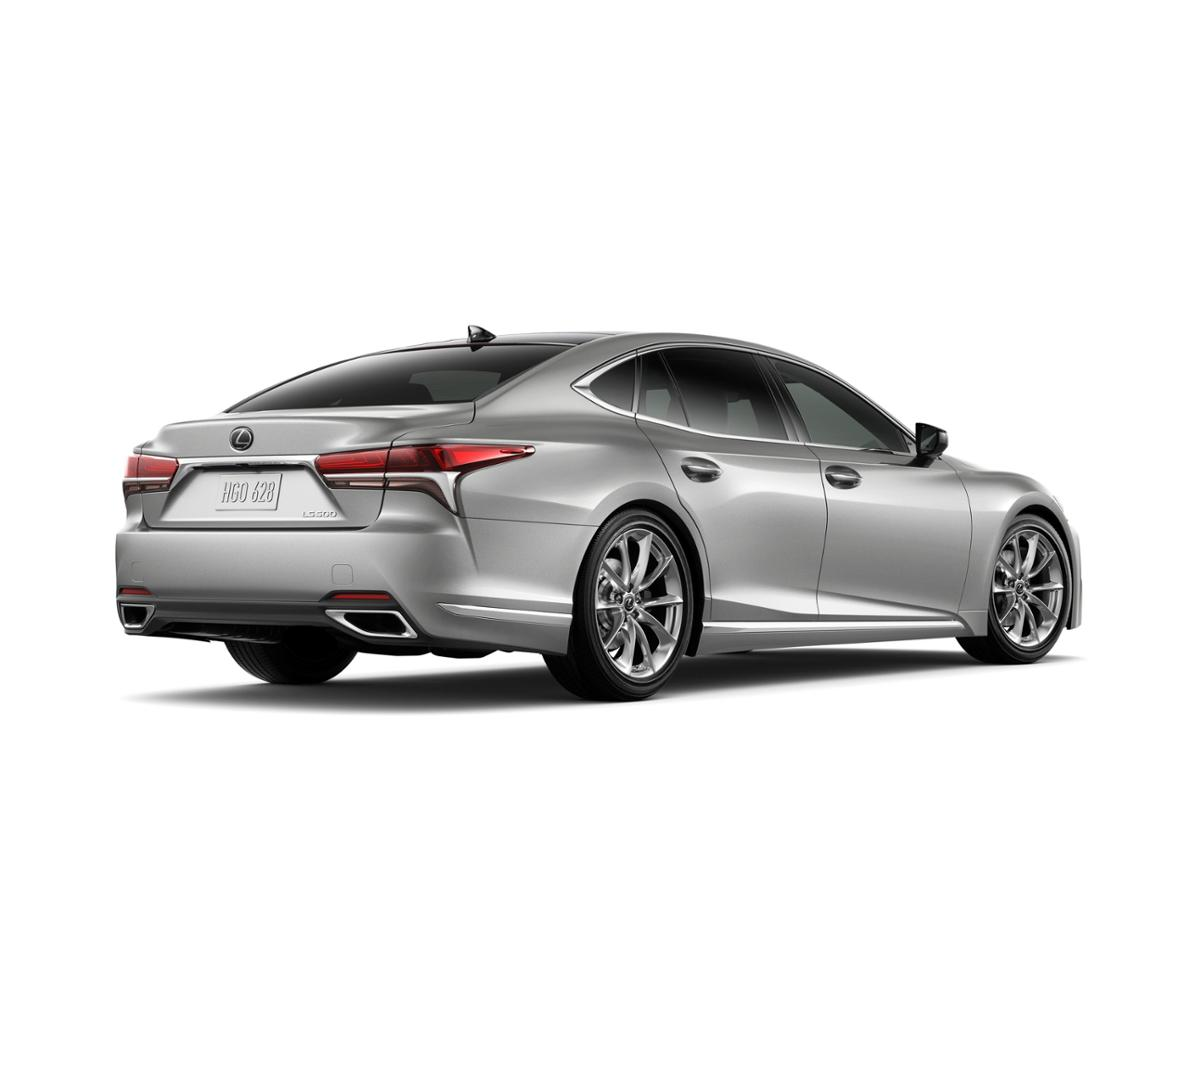 Lexus Dealership In Va: 2018 Lexus LS 500 For Sale In Virginia Beach